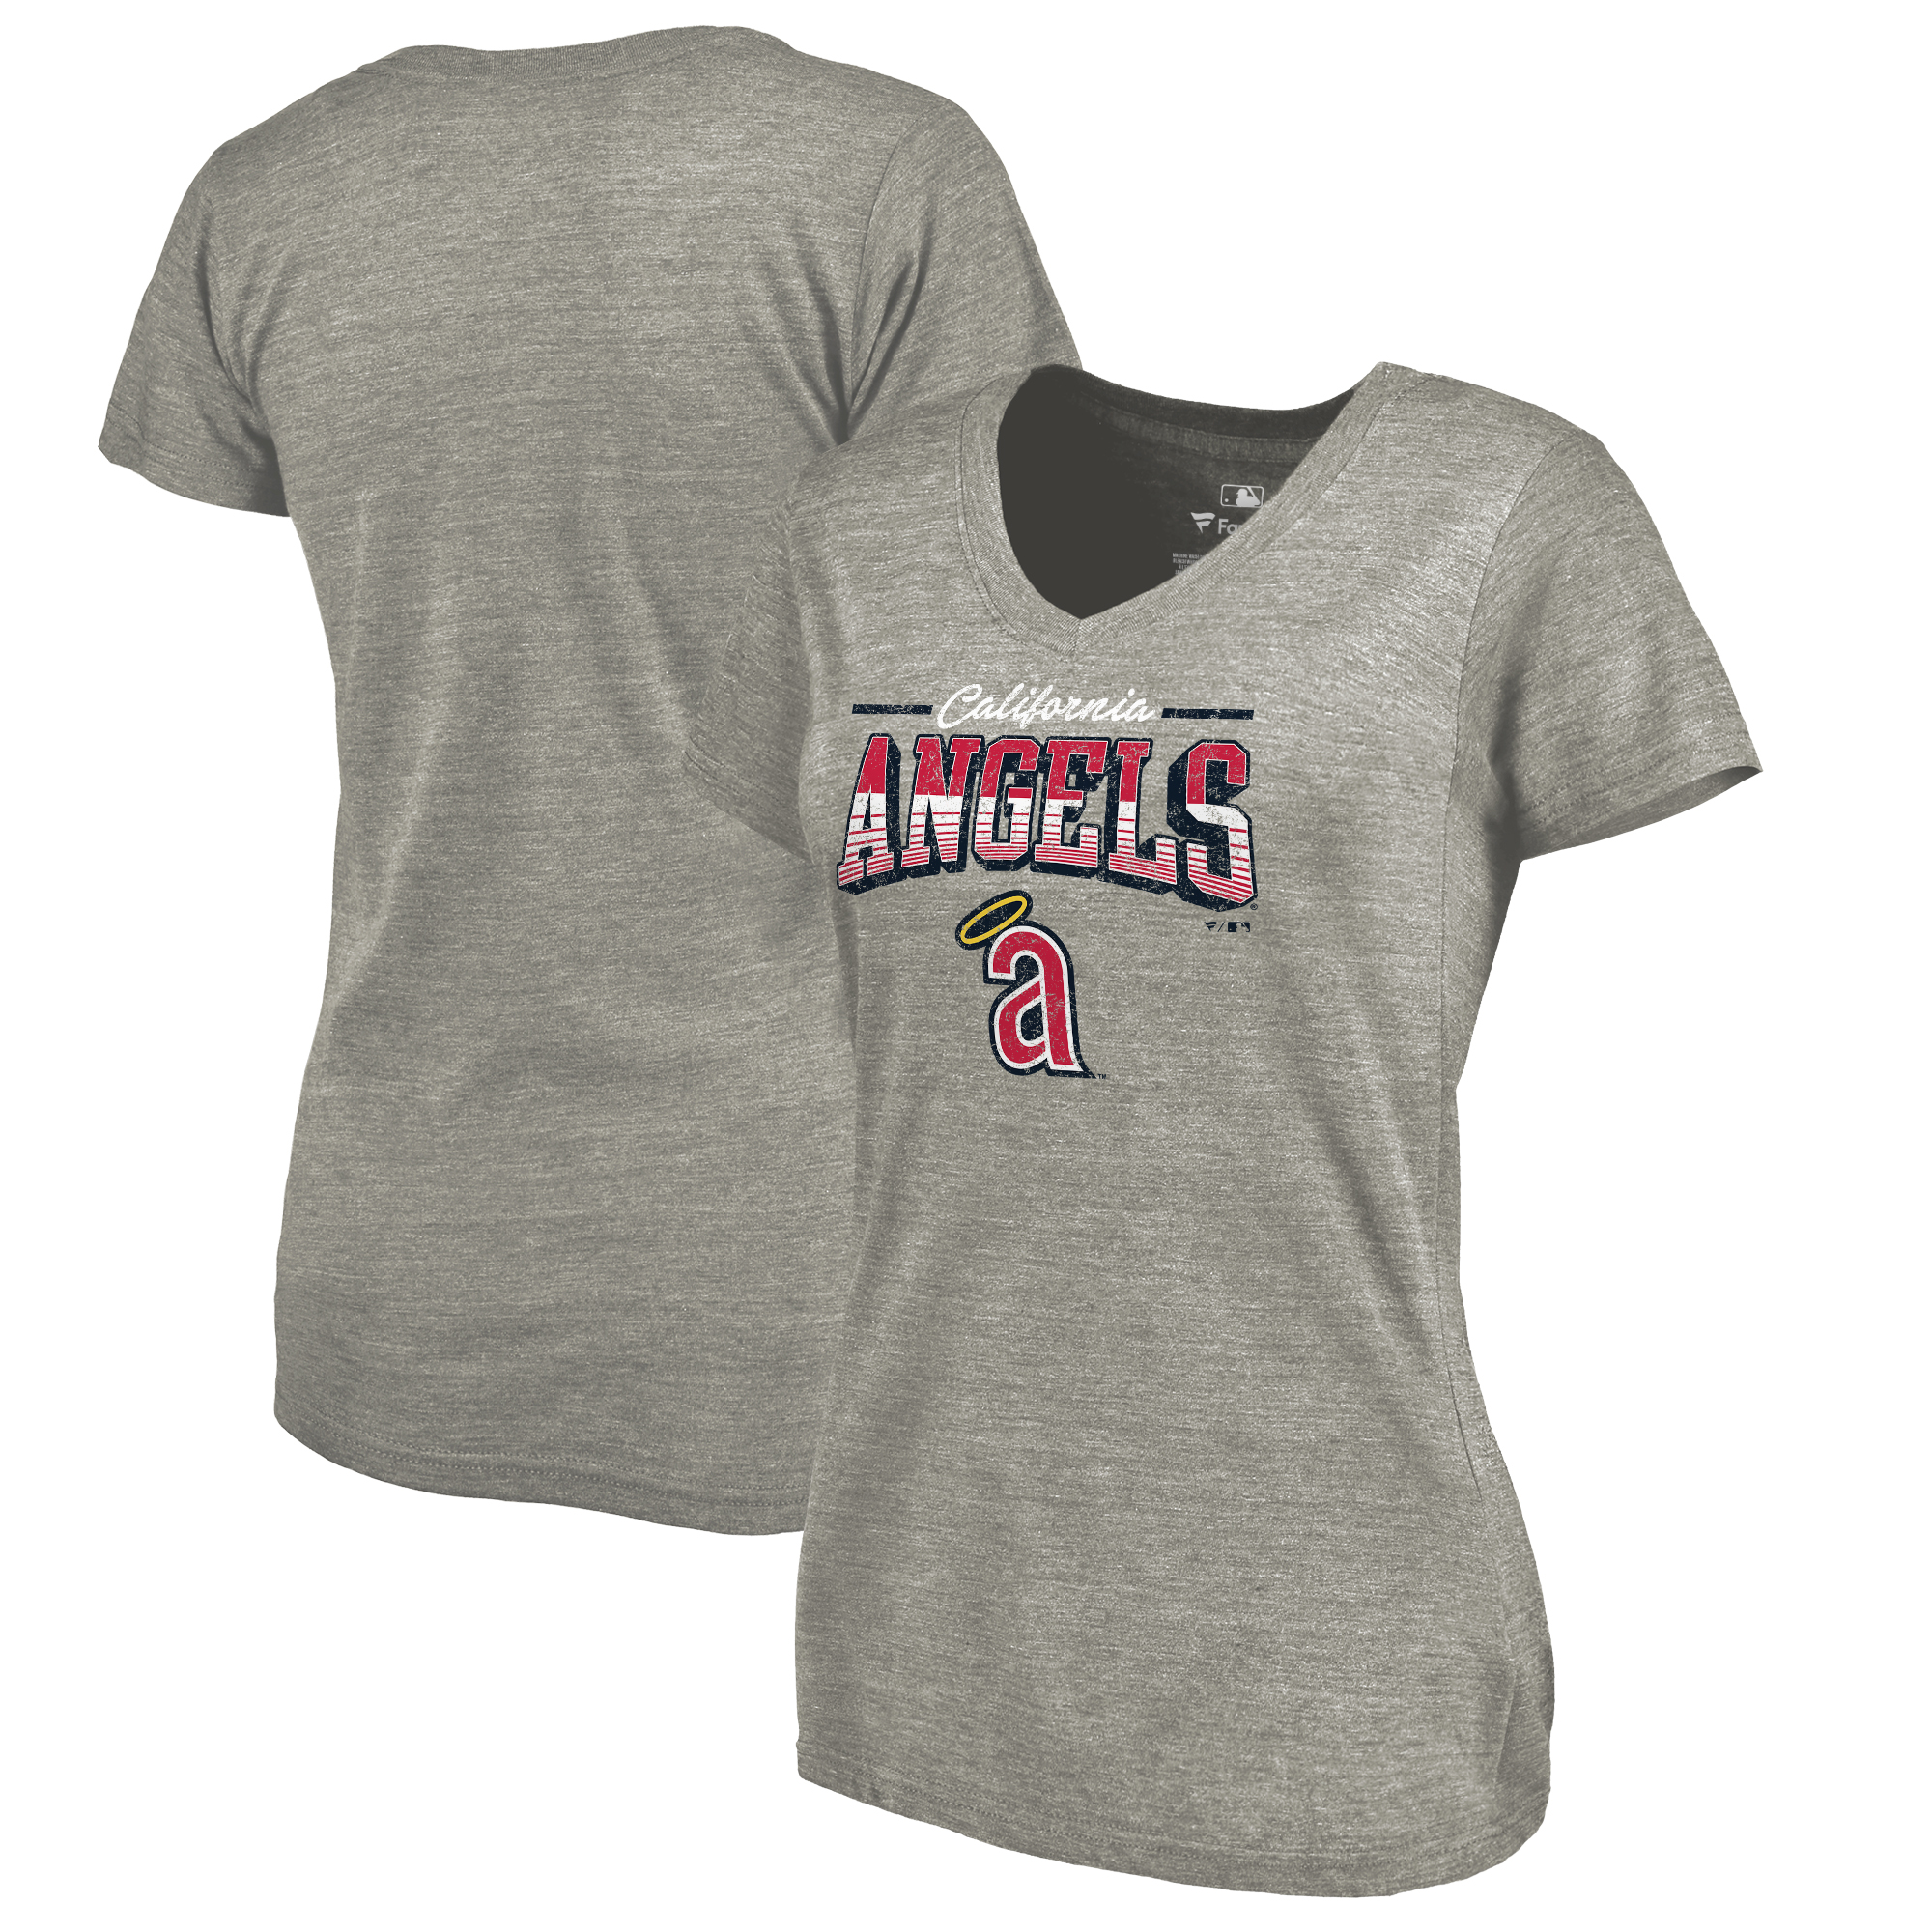 California Angels Fanatics Branded Women's Cooperstown Collection Season Ticket Tri-Blend V-Neck T-Shirt - Heathered Gray